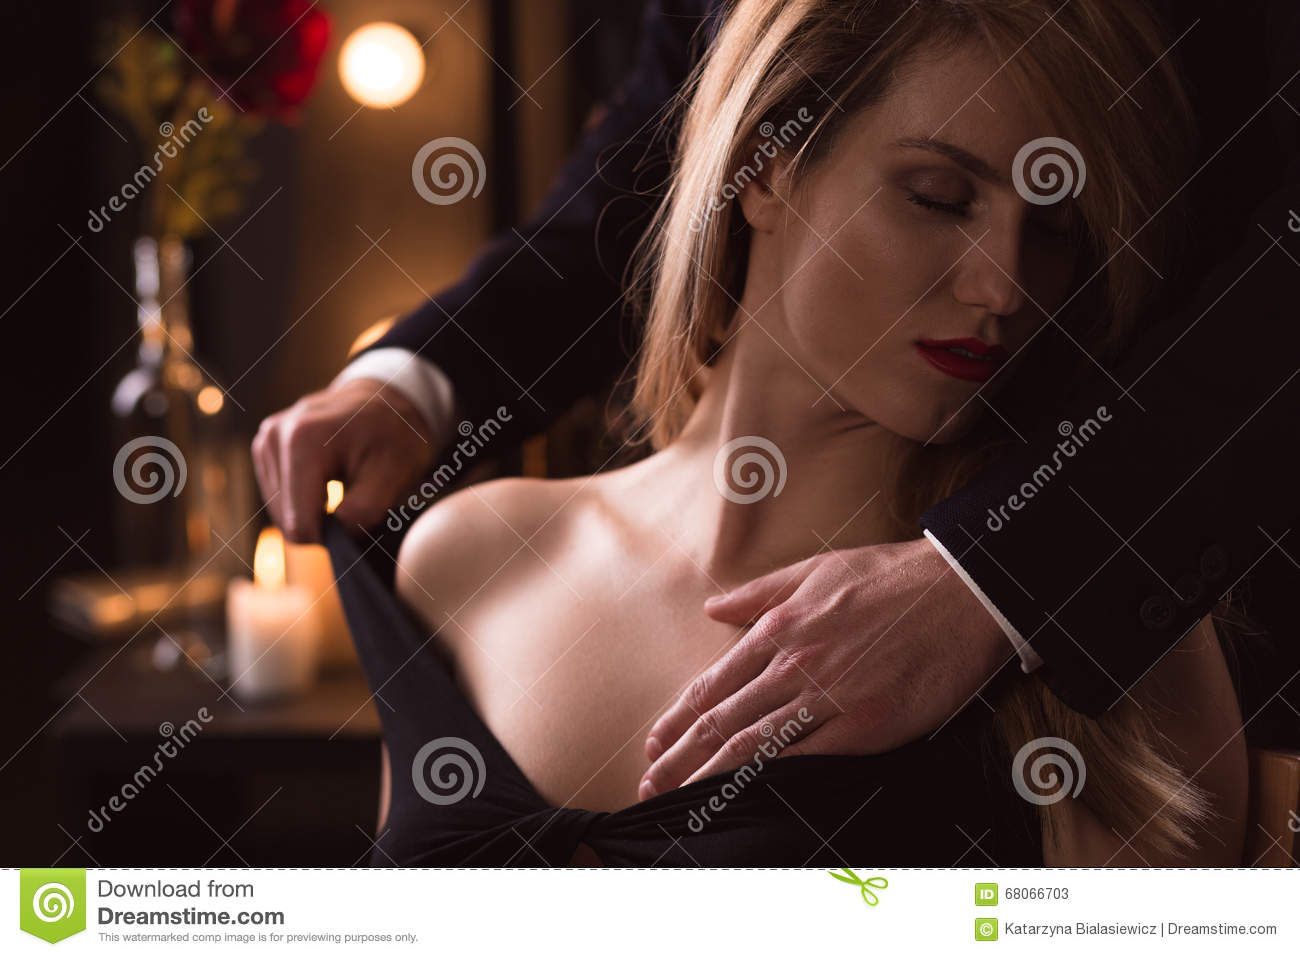 Elegant Woman Has Sex With A Man